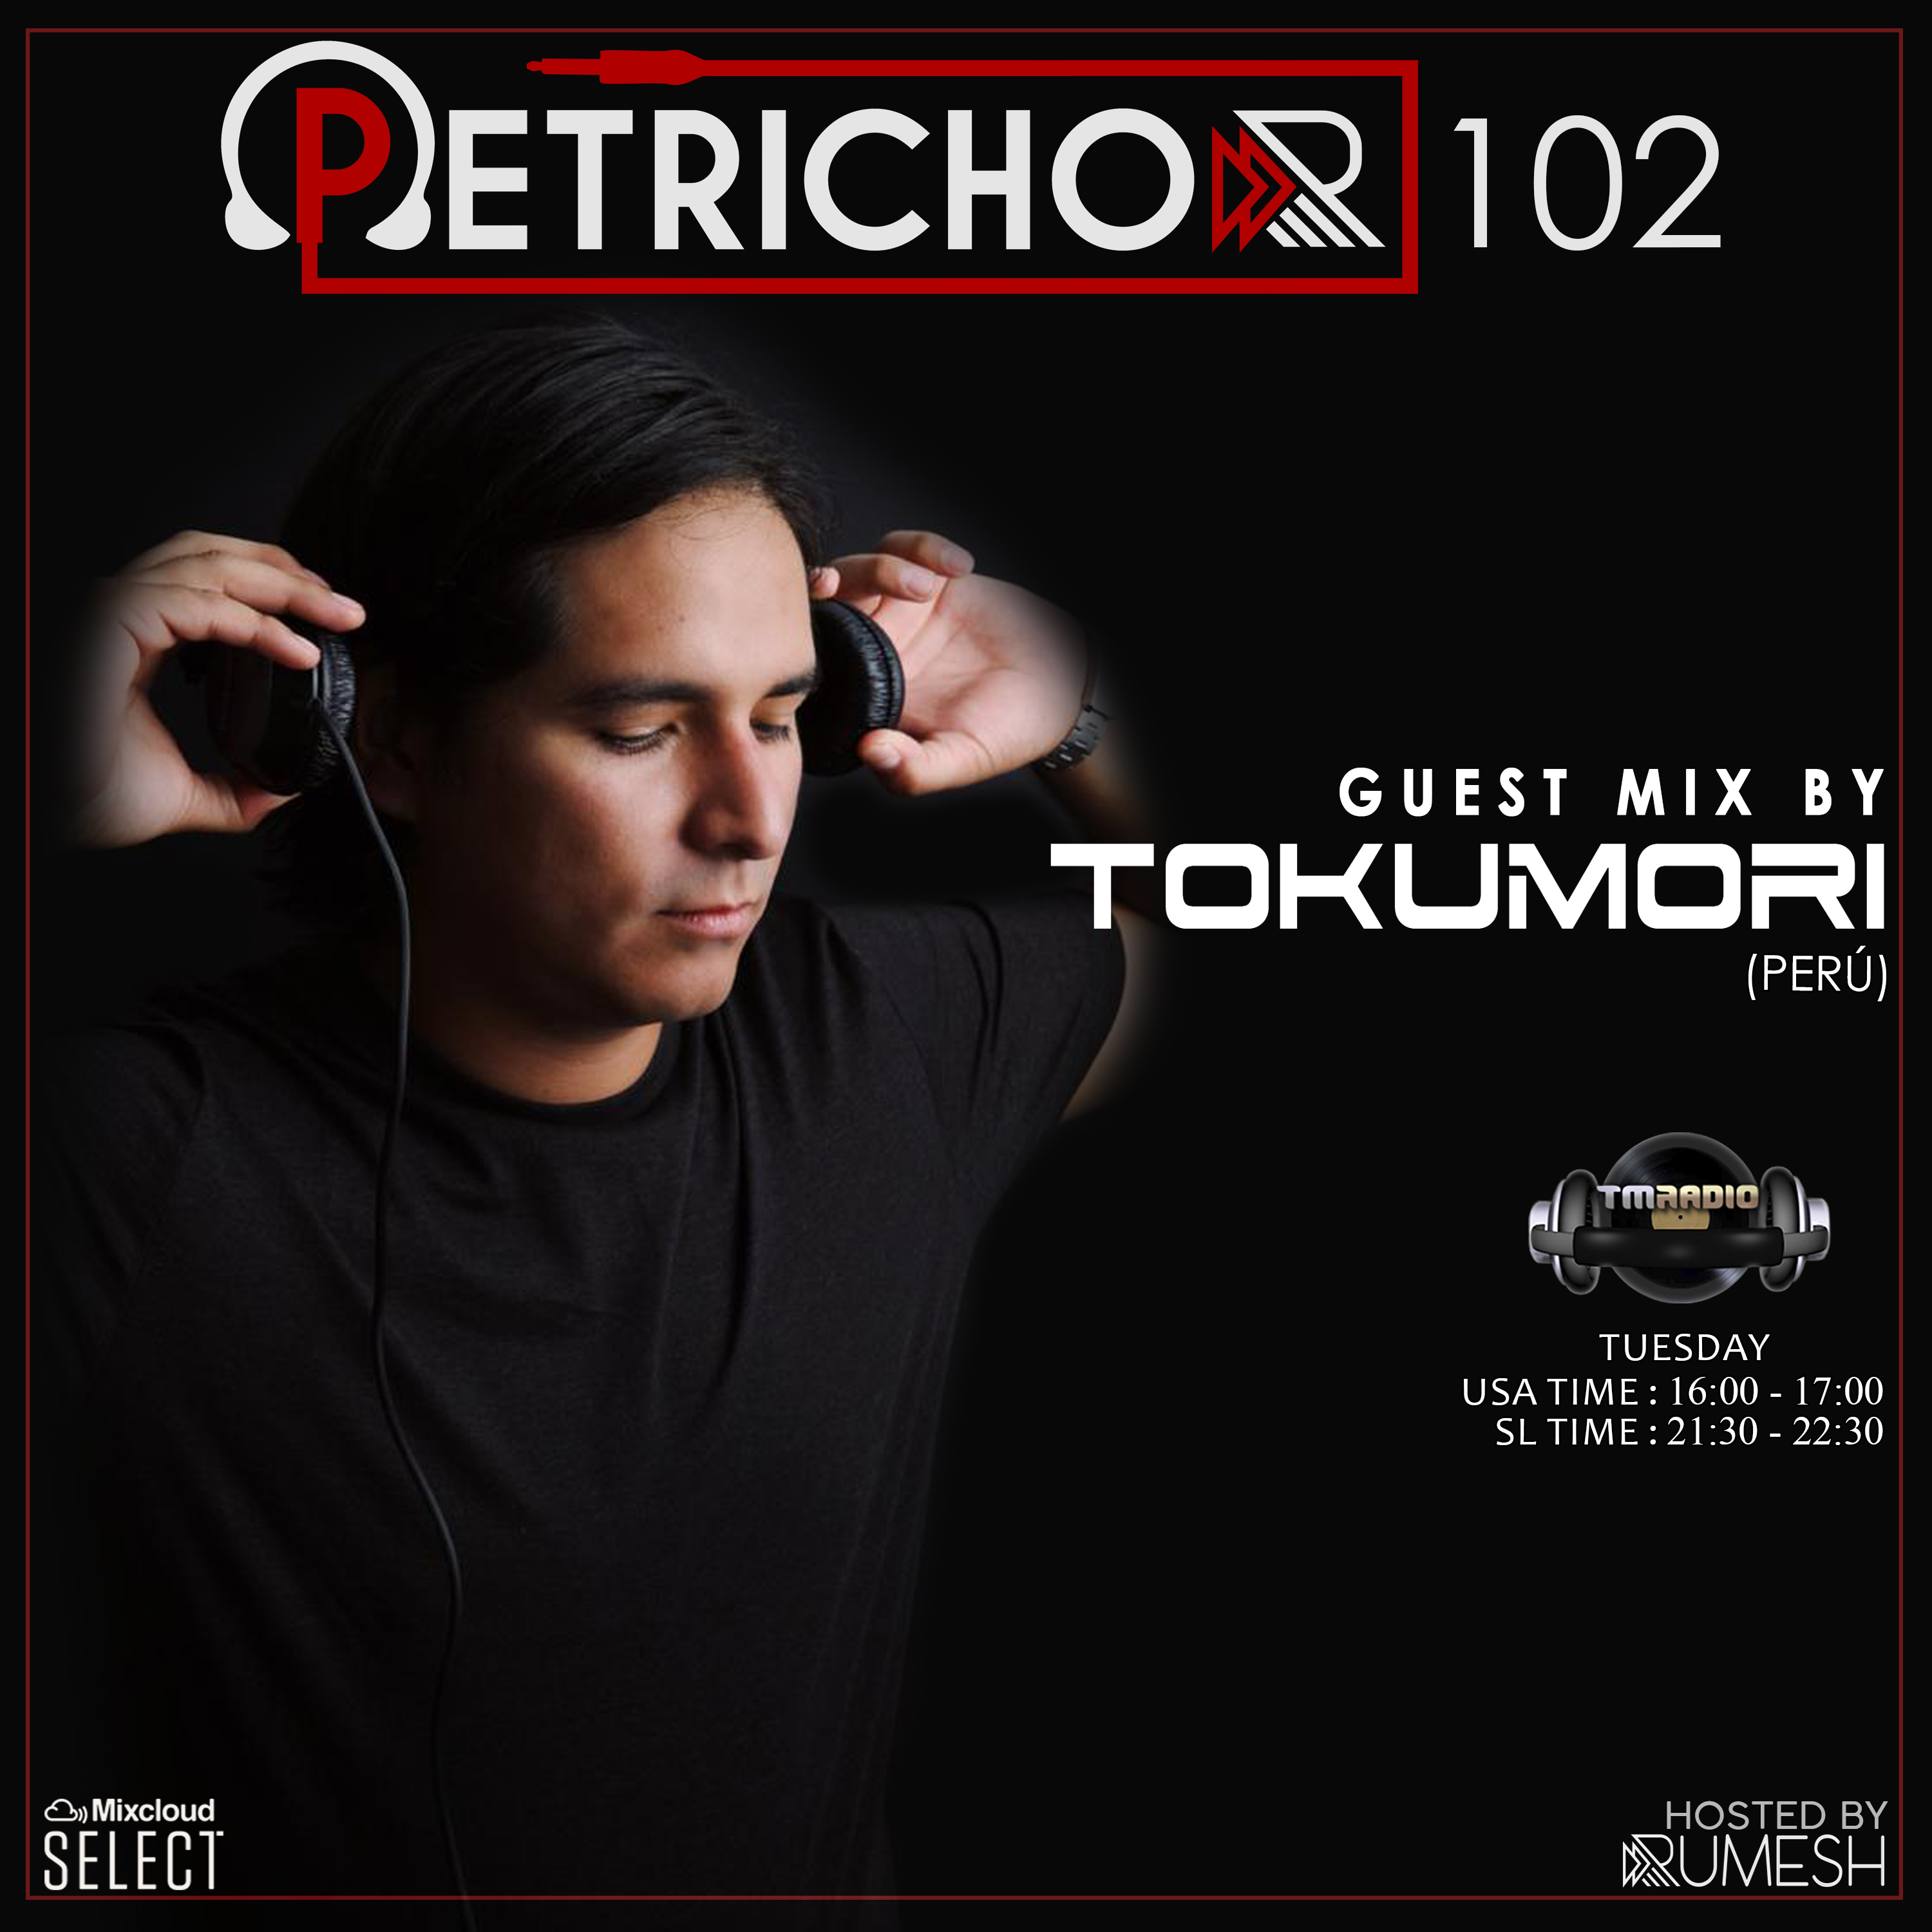 Petrichor :: Petrichor 102 Guest Mix by Tokumori -(Peru) (aired on April 6th) banner logo